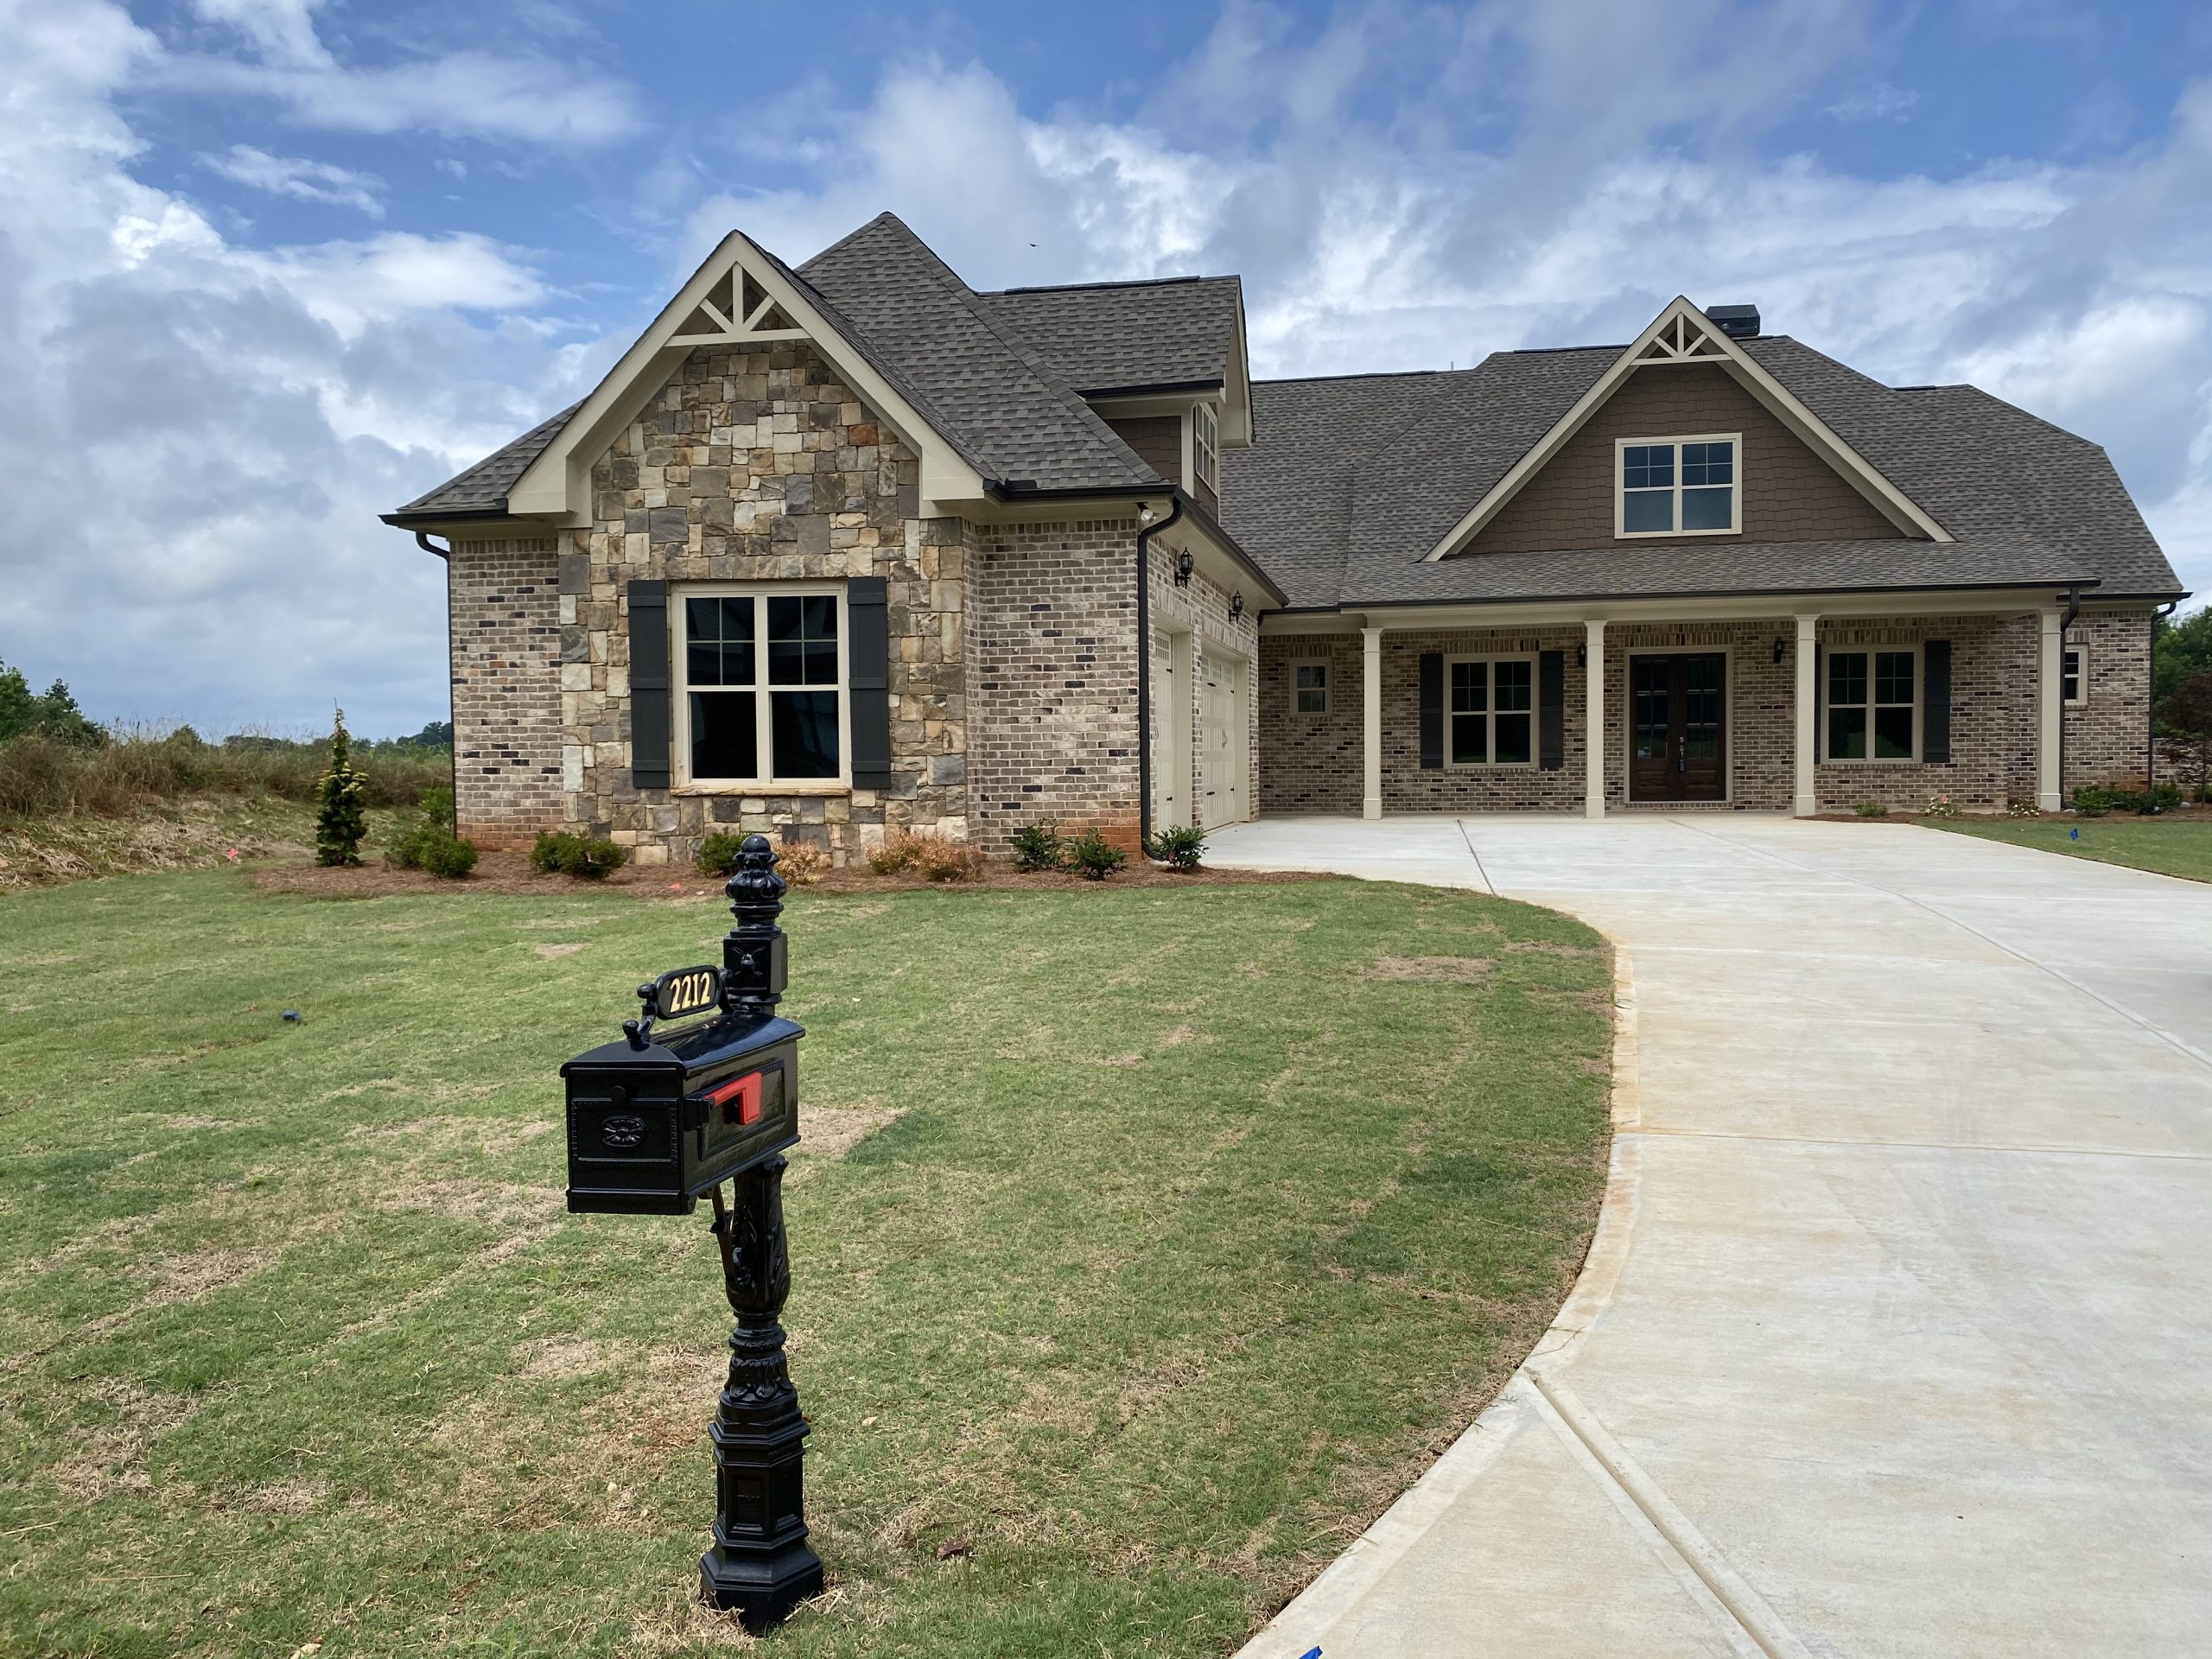 Homes for Sale in Traditions of Braselton